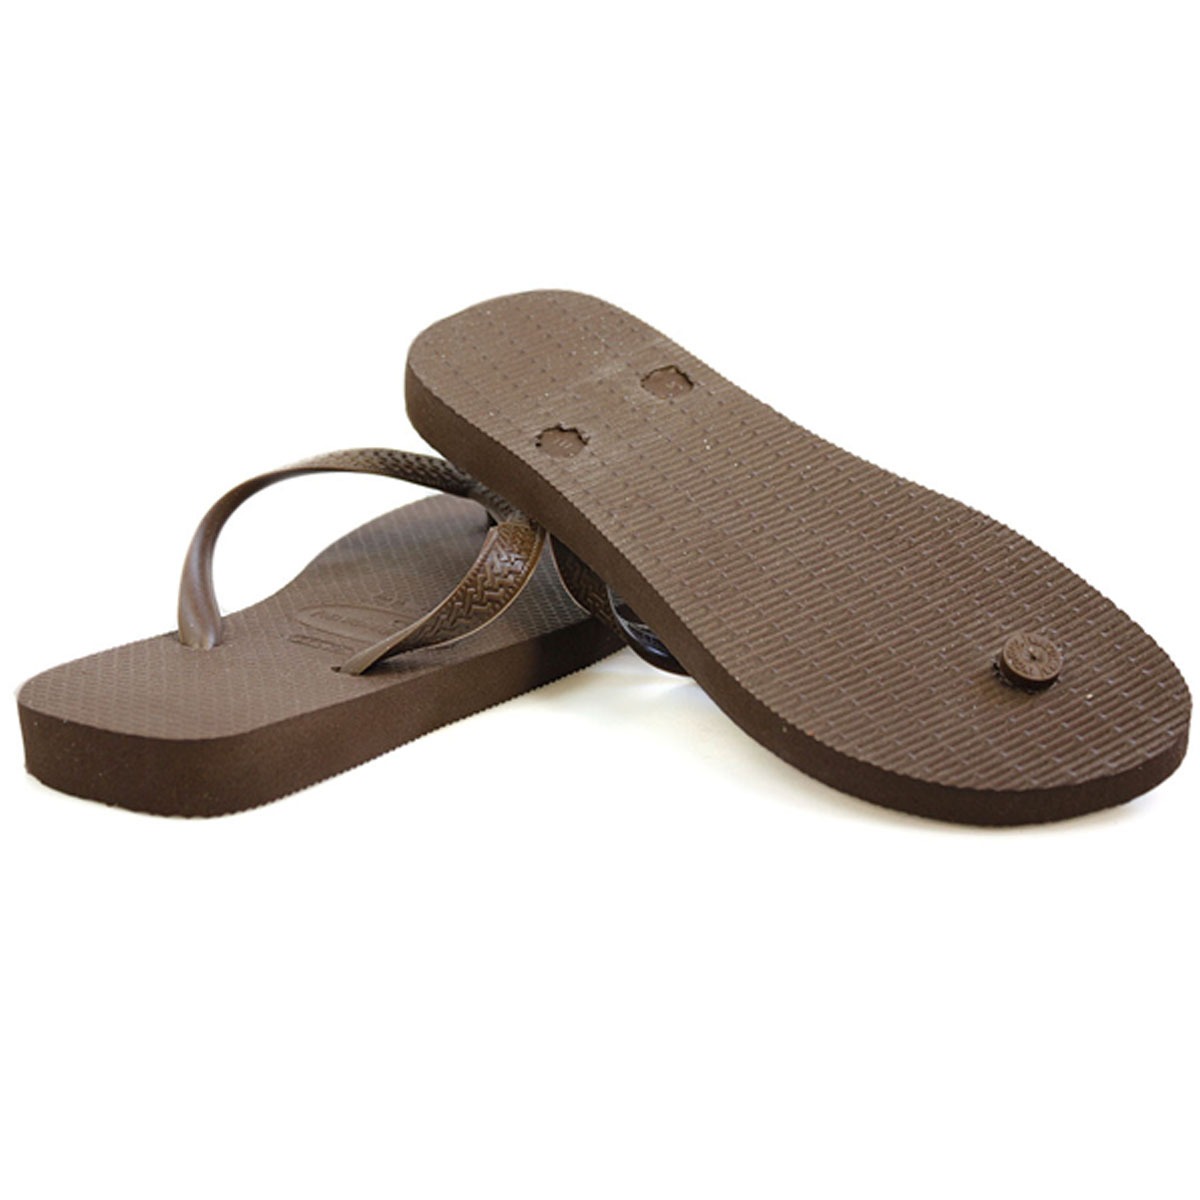 Find great deals on eBay for womens rubber flip flops. Shop with confidence.